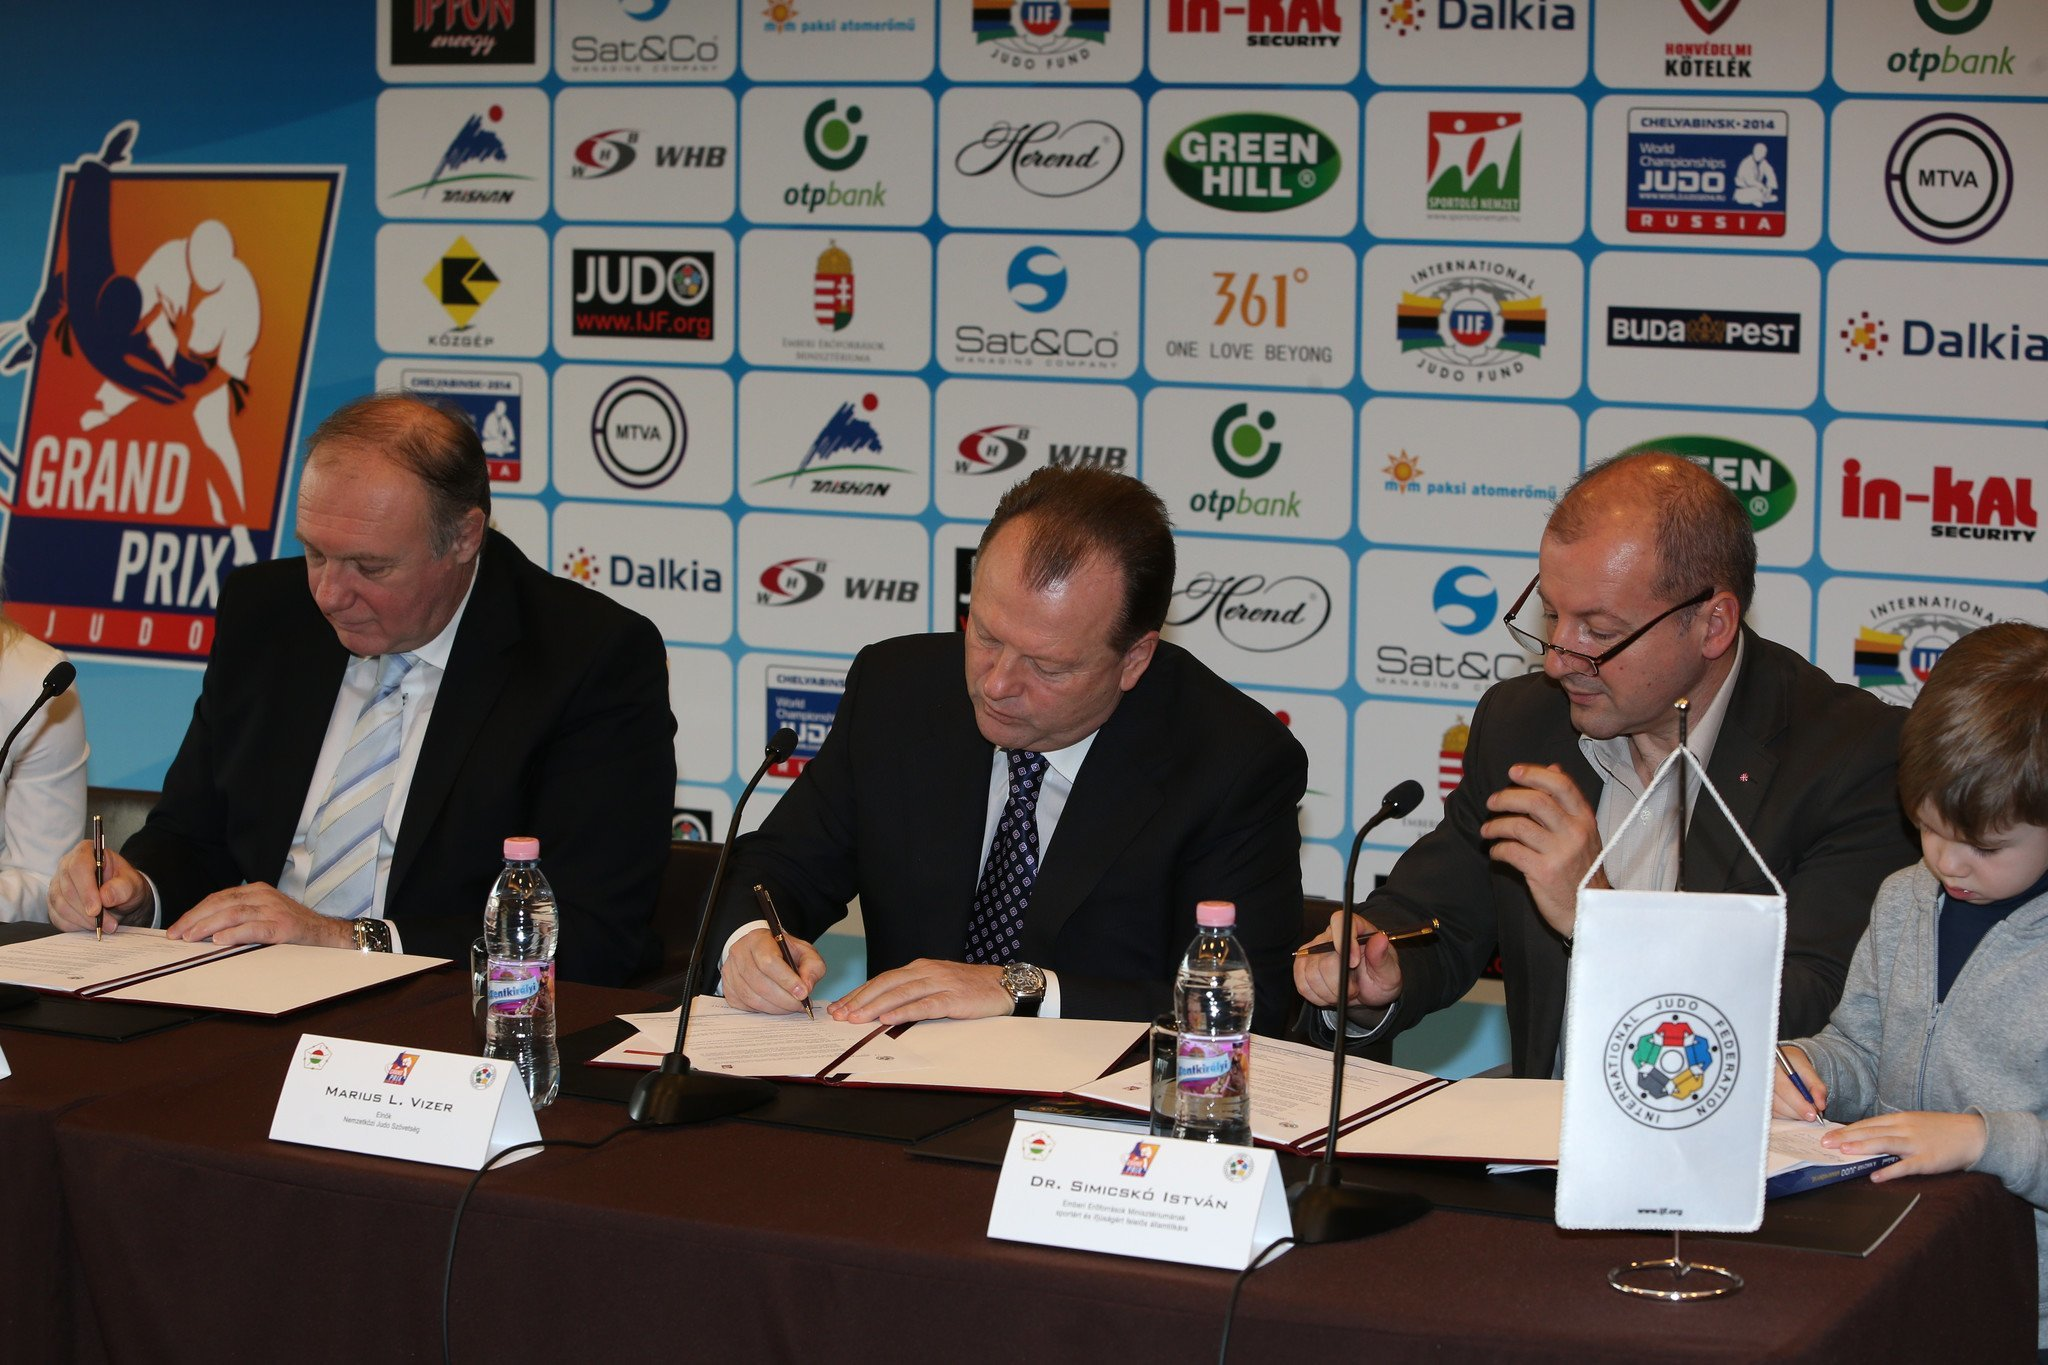 World Judo Tour: Hungary joins with Budapest Grand Prix